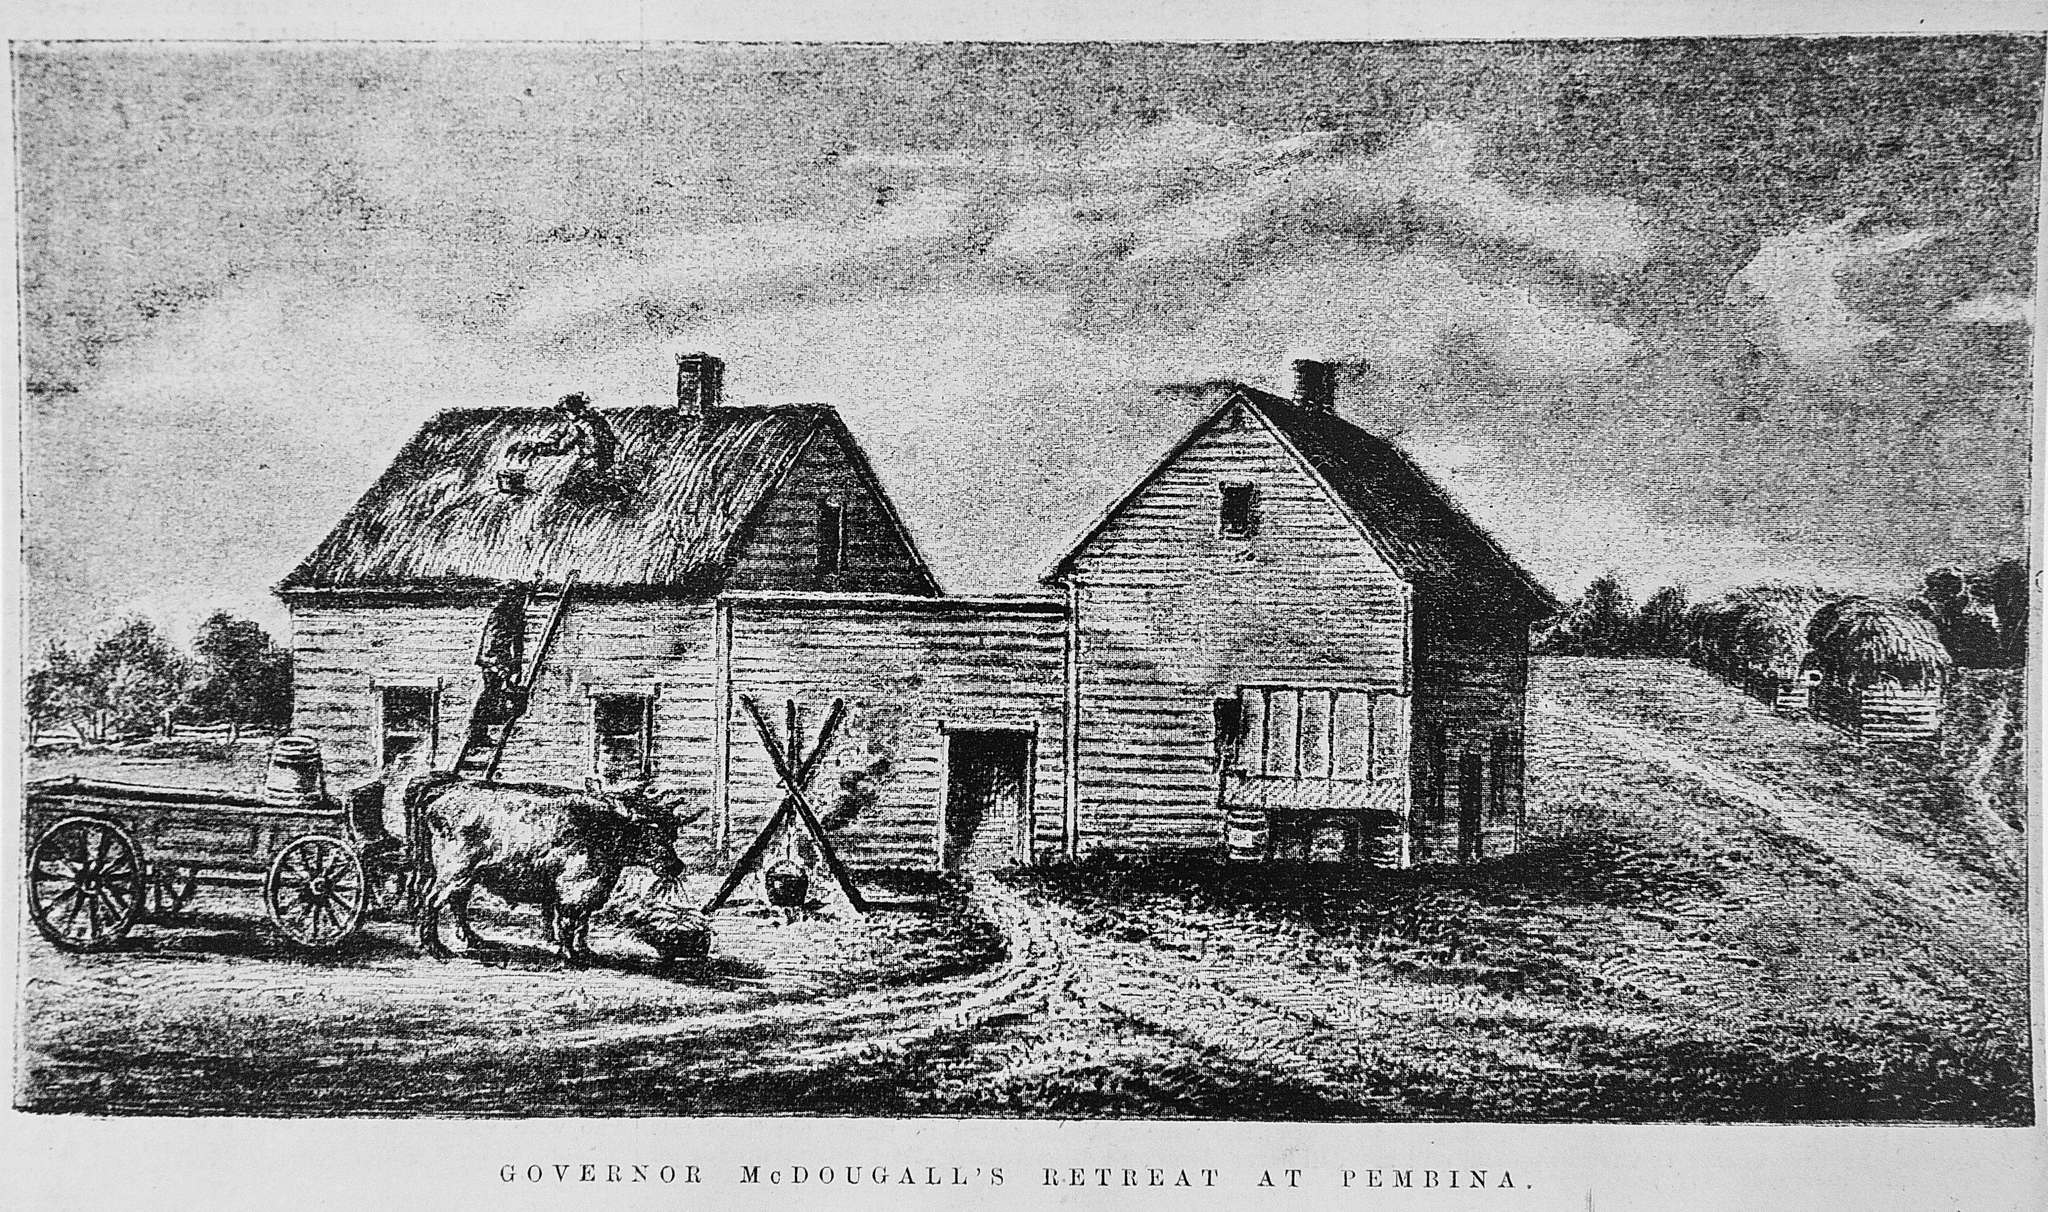 William McDougall's retreat at Pembina. (Archives of Manitoba) </p>